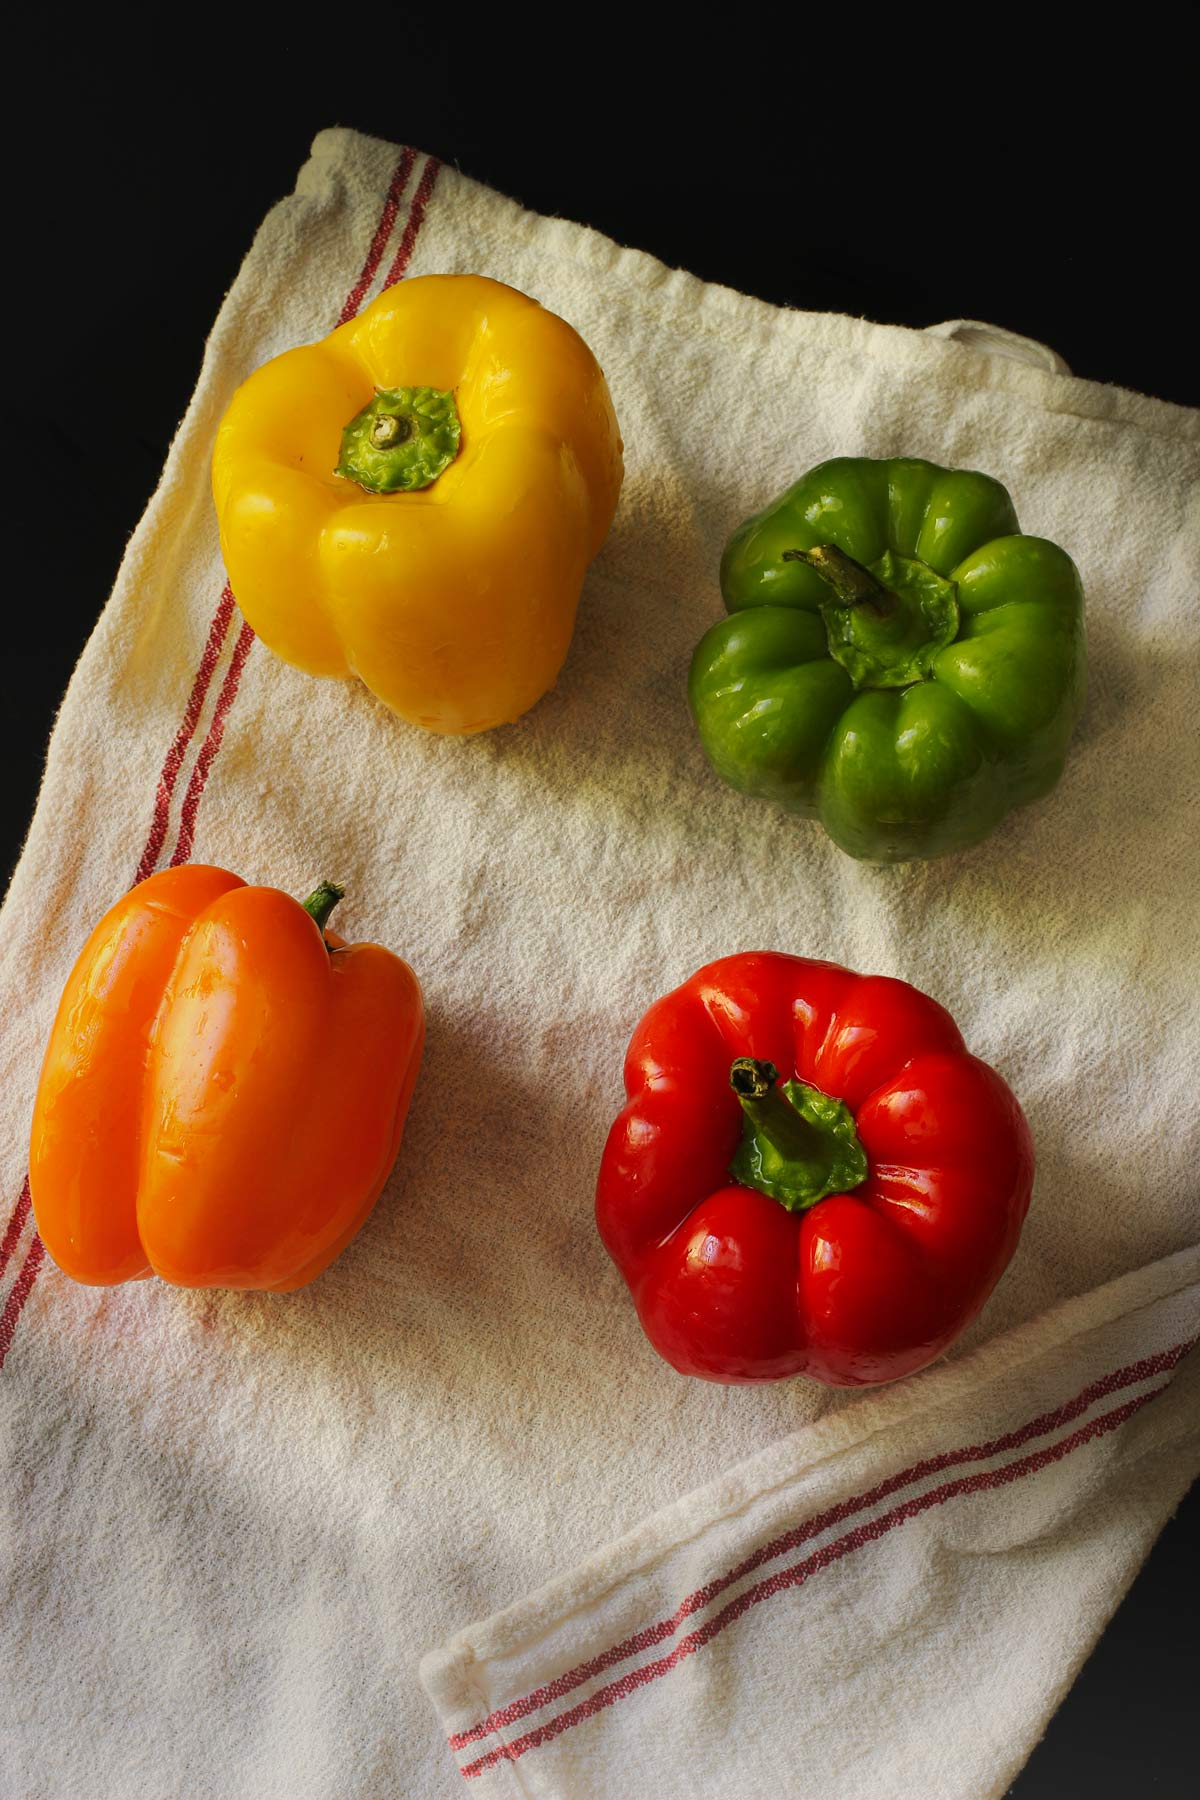 orange, yellow, green, and red bell peppers on a white tea towel.